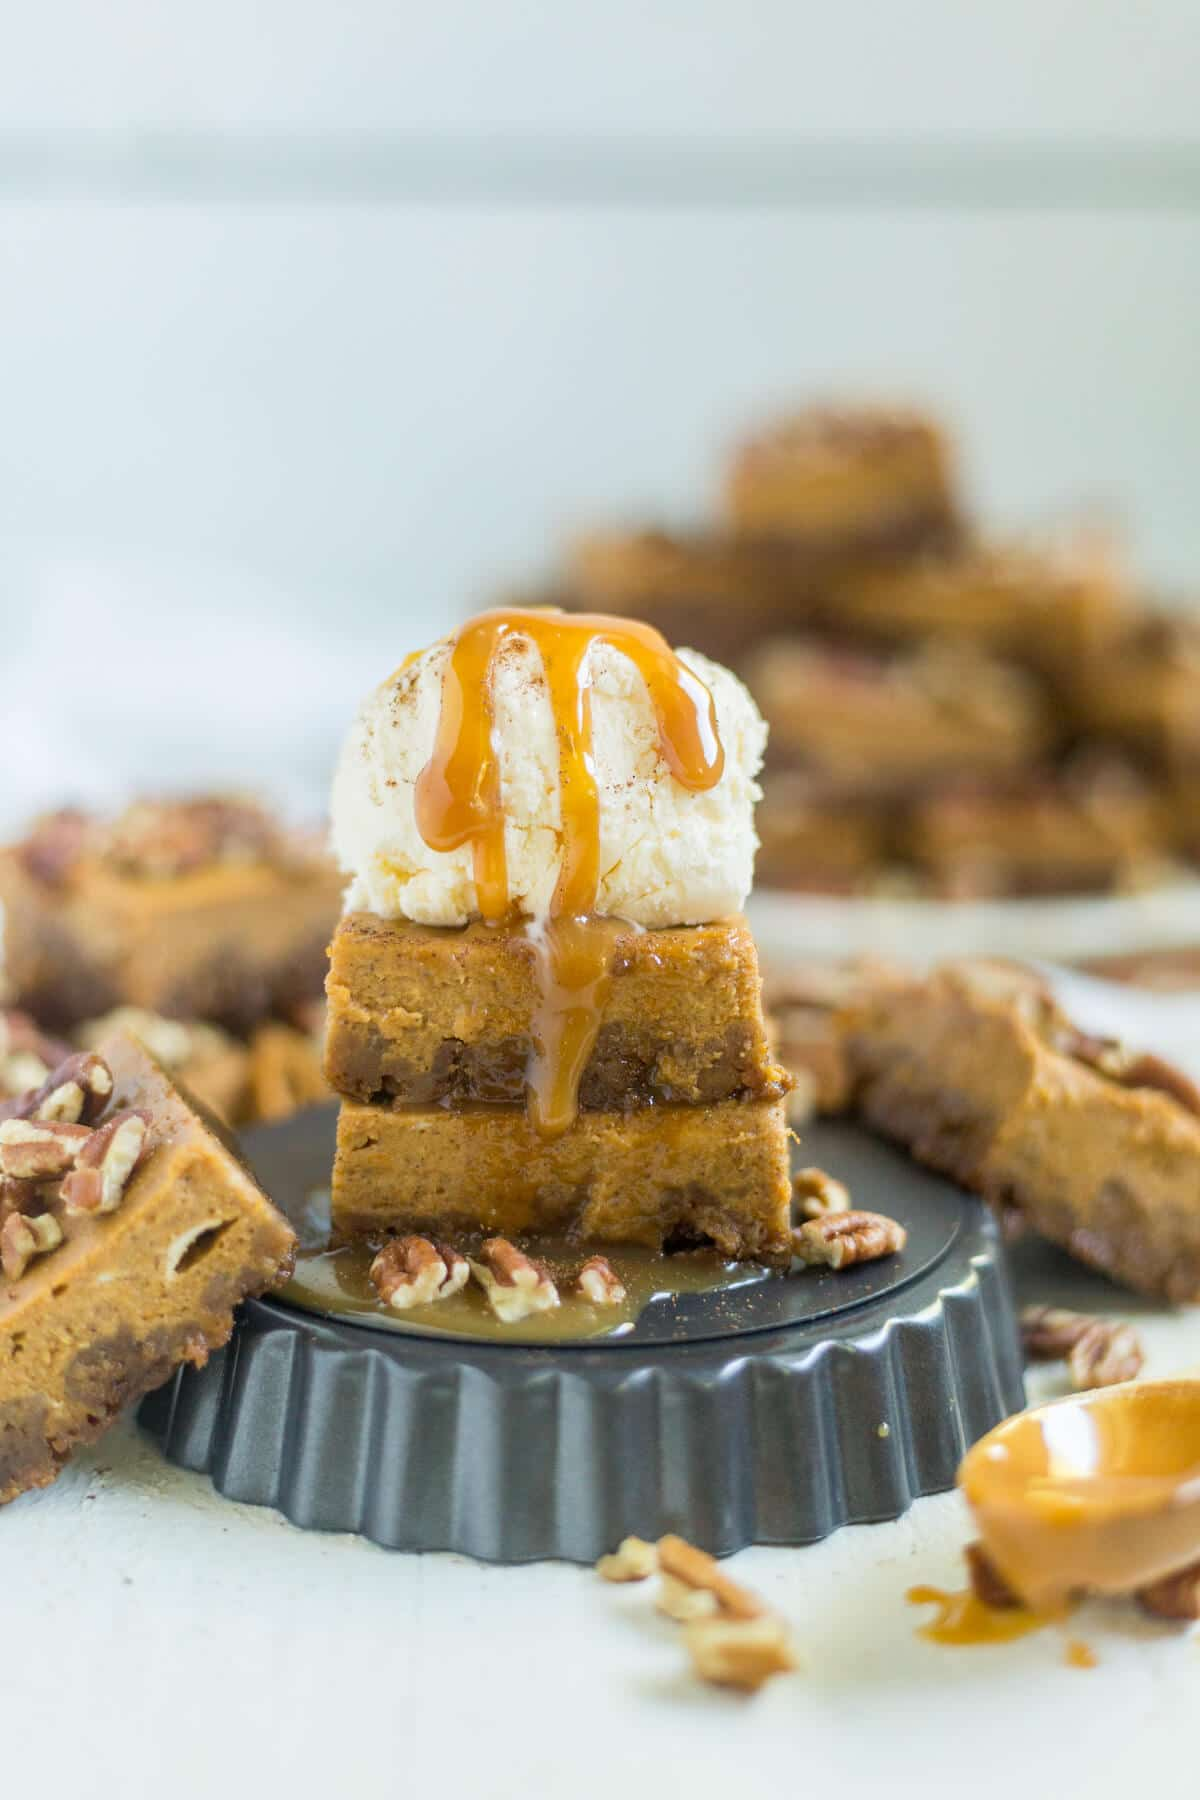 Pumpkin pie bars are a fun twist on a classic Thanksgiving recipe! The crust is made from crushed gingerbread and the bars are just like pumpkin pie and topped with pecans, caramel, ice cream and more!